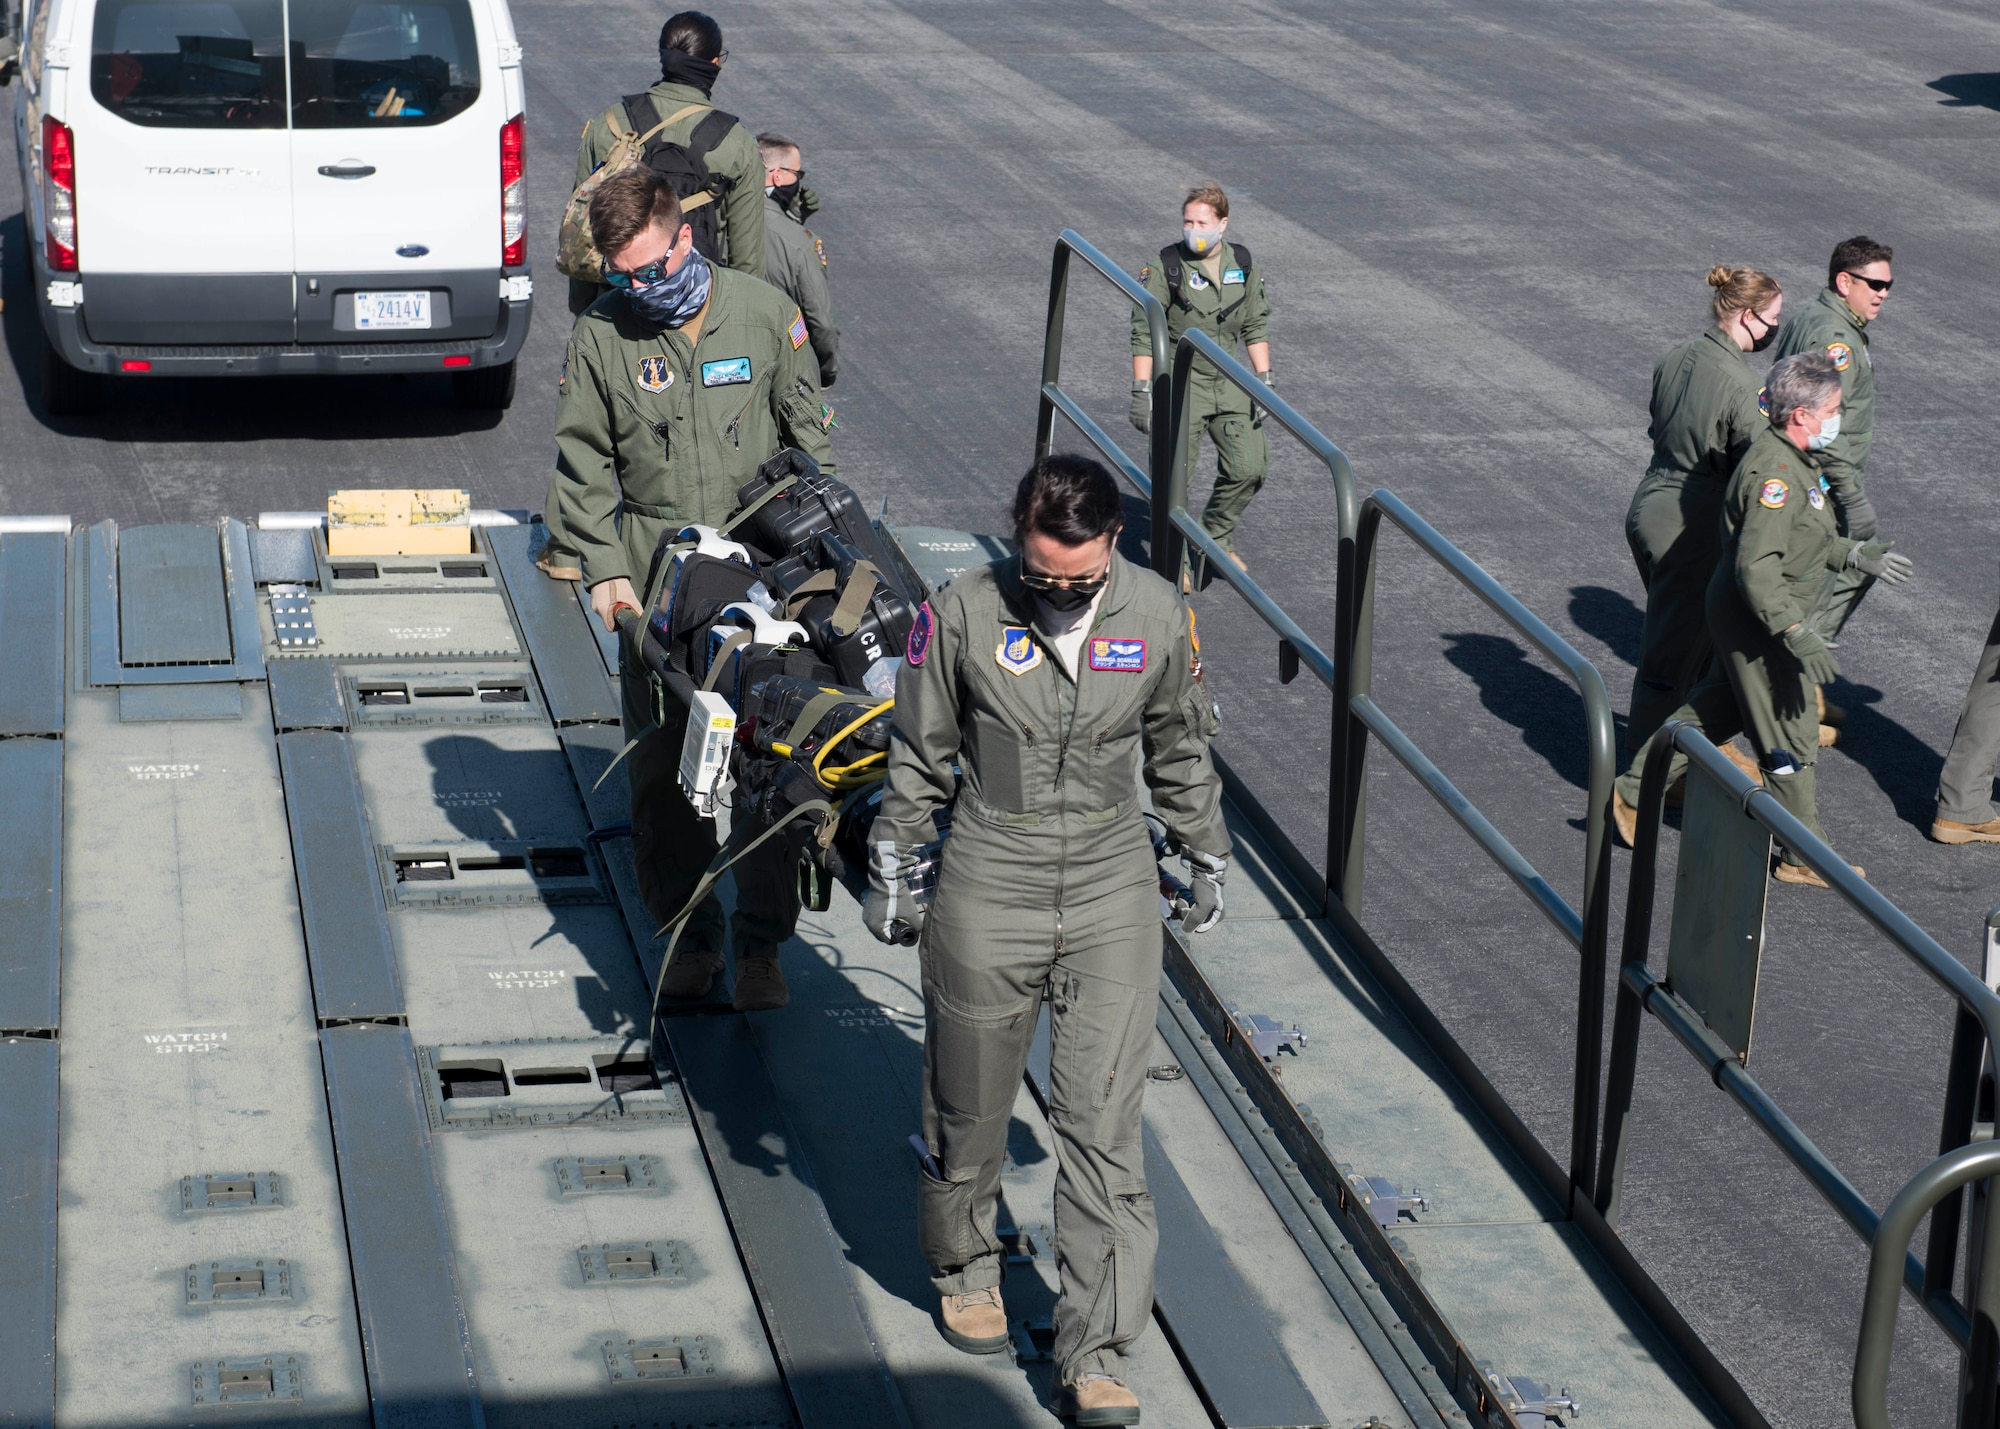 U.S. Air Force Capt. Amanda Scanlon, 18th Aeromedical Evacuation Squadron flight nurse, and U.S. Air National Guard Tech. Sgt. Alex Klinger, 187th AES aeromedical evacuation technician, loaded a litter of AE supplies on a KC-135 Stratotanker at Joint Base Pearl Harbor-Hickam, Hawaii, Nov. 10, 2020. By working with Pacific Air Force and Total Force partners from the 187th AES and 18th AES, Team Fairchild Airmen were able to ensure a continued investment in a high quality of life and medical service for Airmen and joint partners in the Pacific. (U.S. Air Force photo by Senior Airman Lawrence Sena)